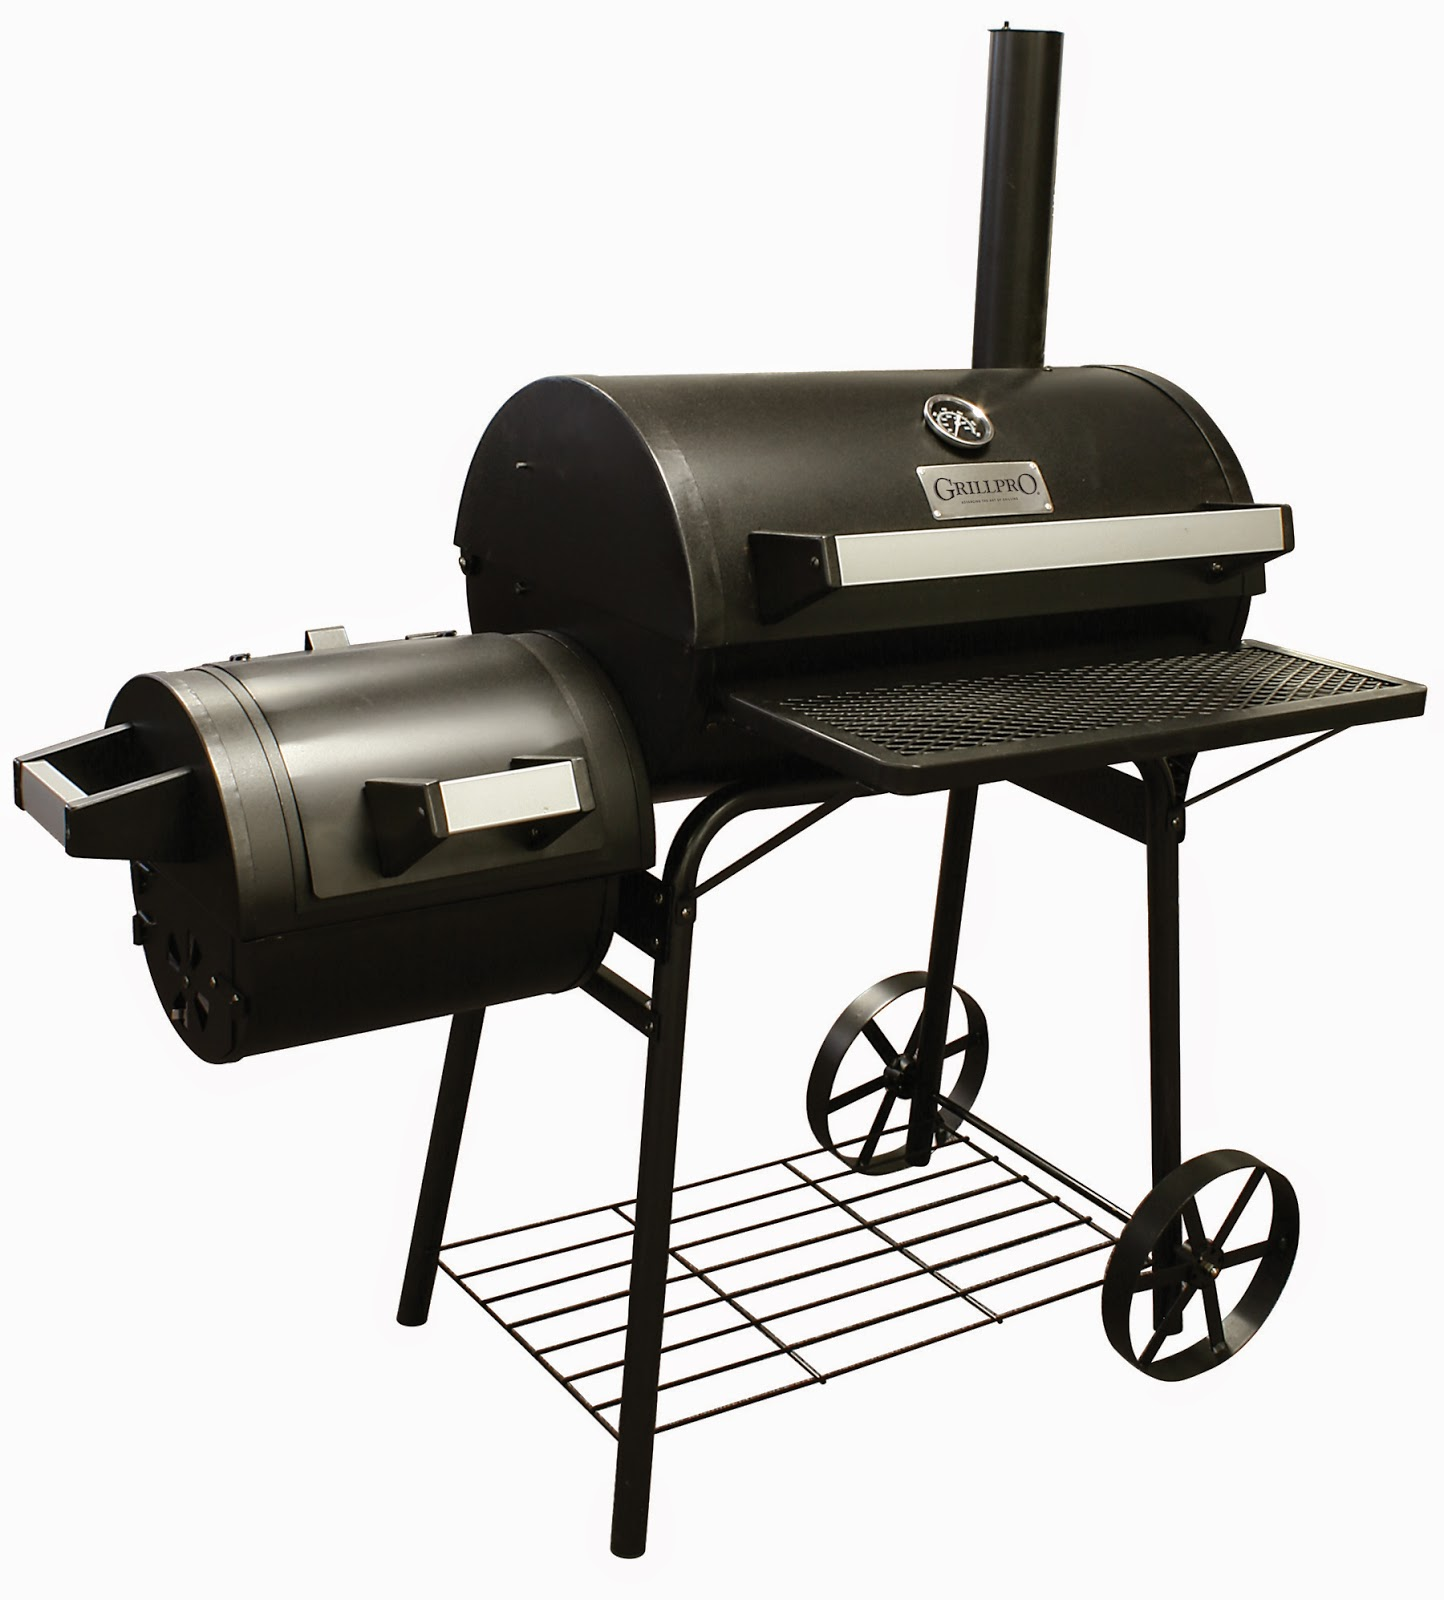 starving foodie win a grill pro bbq smoker from ontario gas bbq. Black Bedroom Furniture Sets. Home Design Ideas